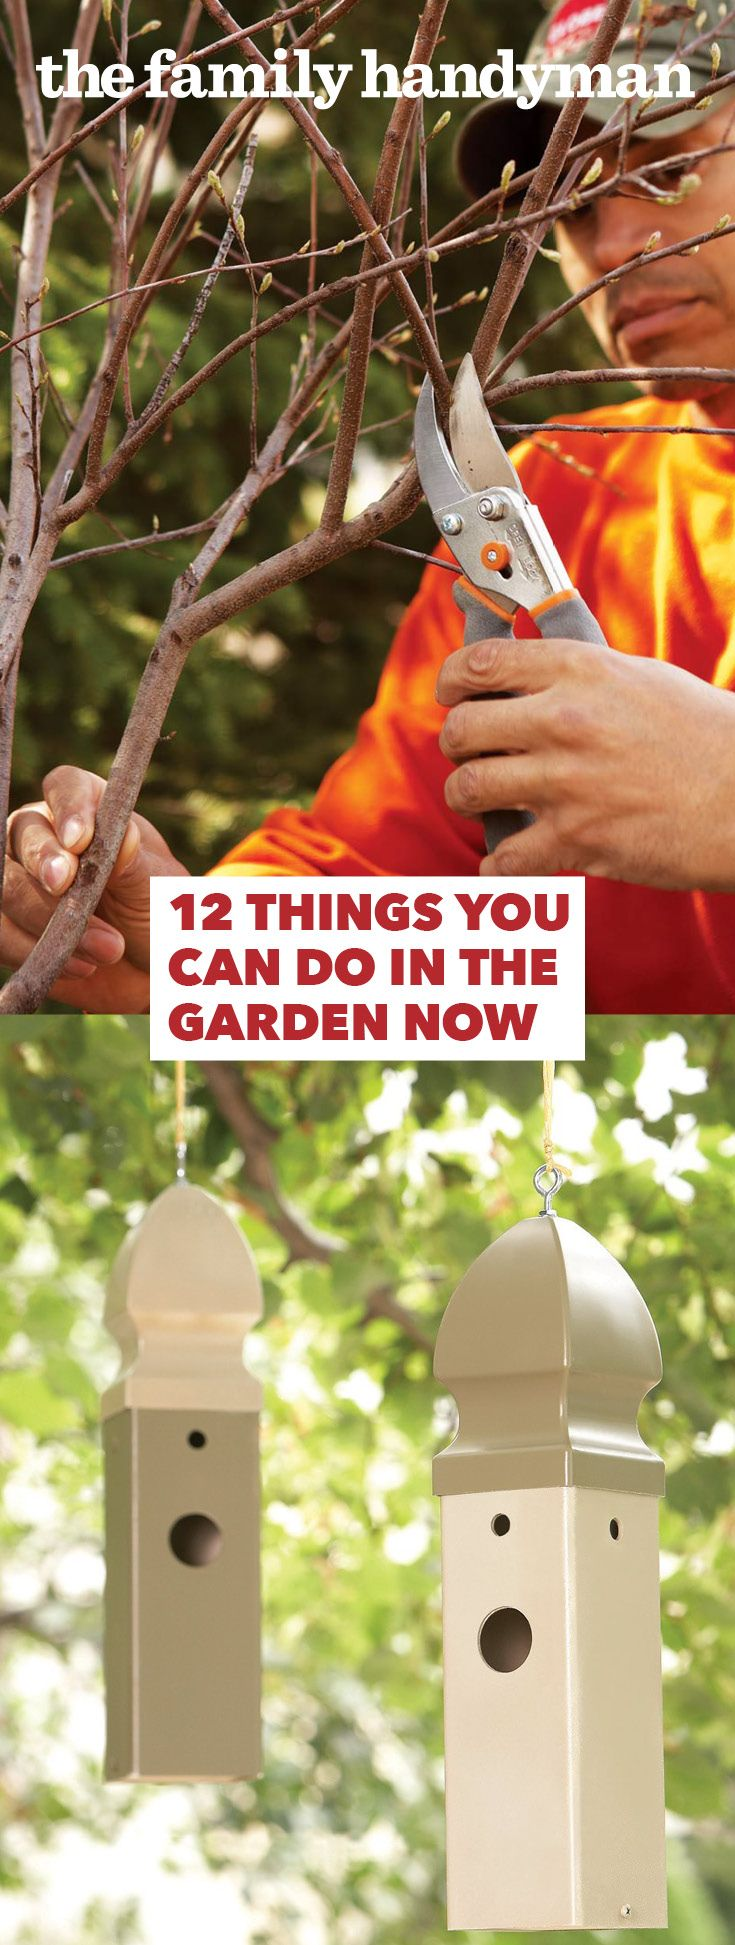 The calendar might read winter but spring is just around the corner. Get your garden ready now with a few things that are easy to do in winter.